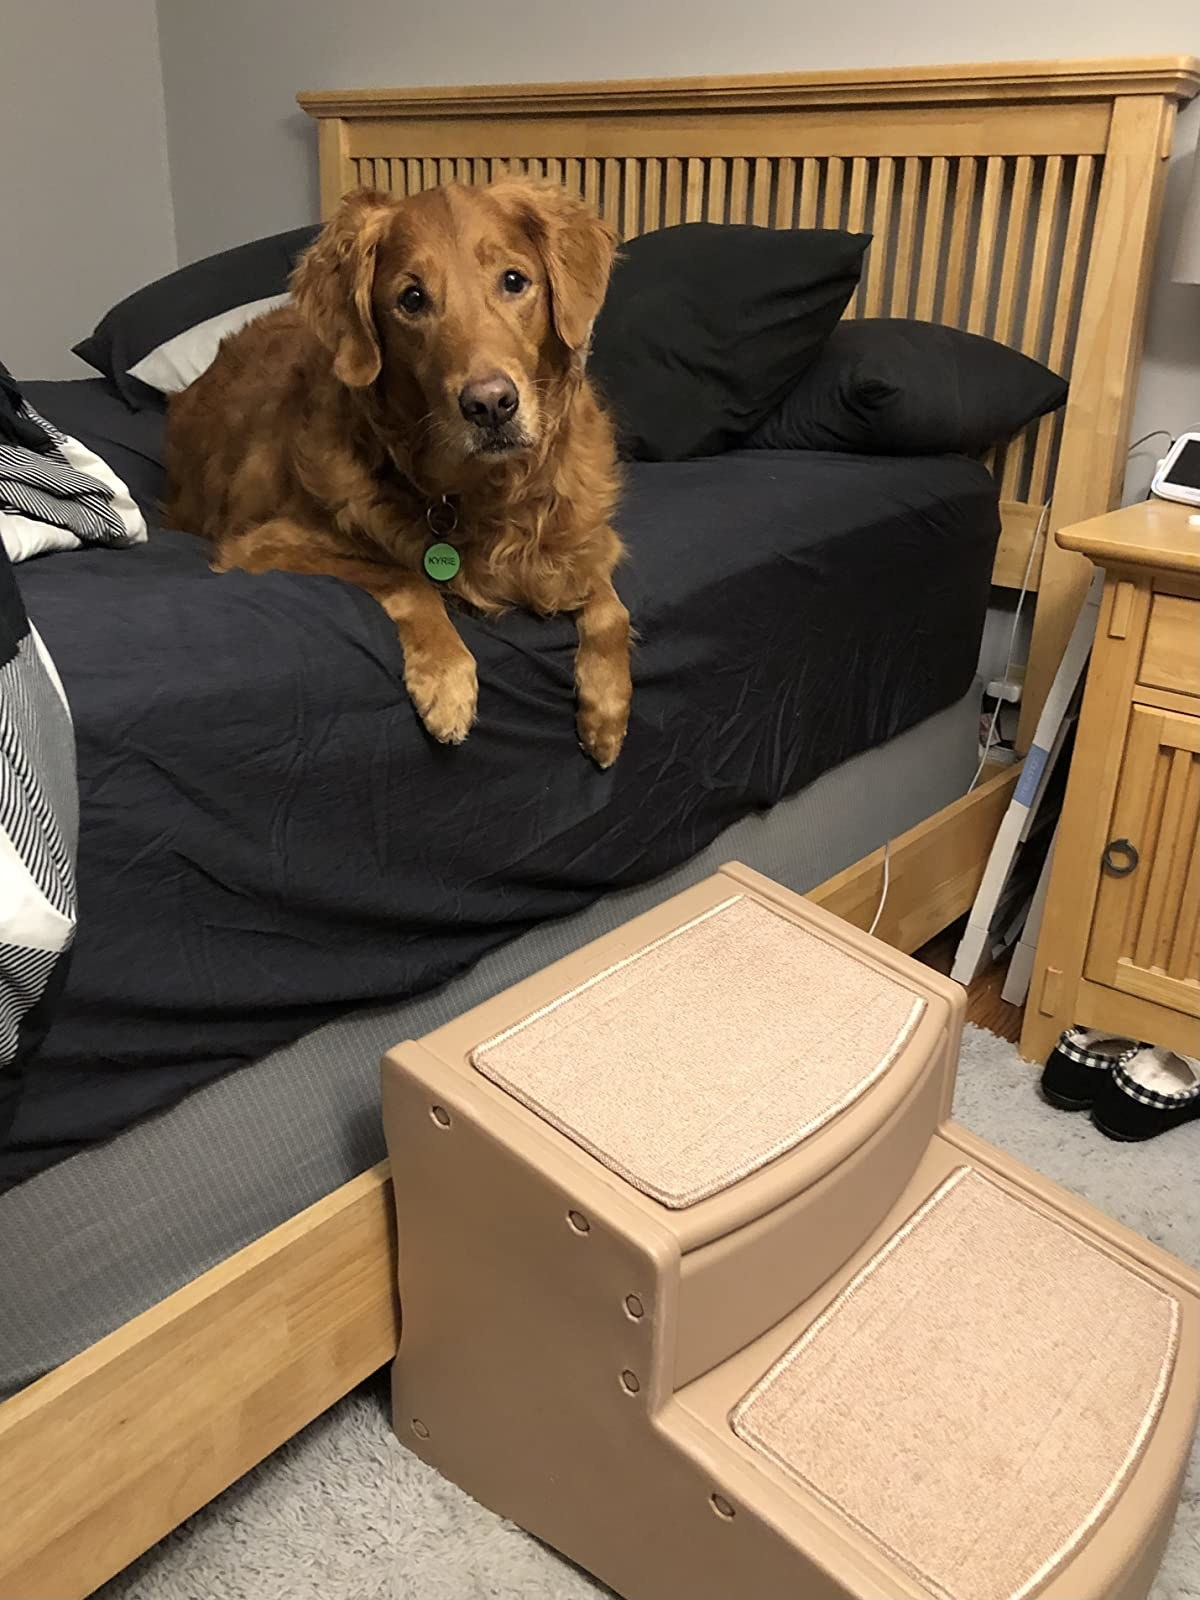 The stairs, which are two large, wide steps, leading up to a bed with a golden retriever on it